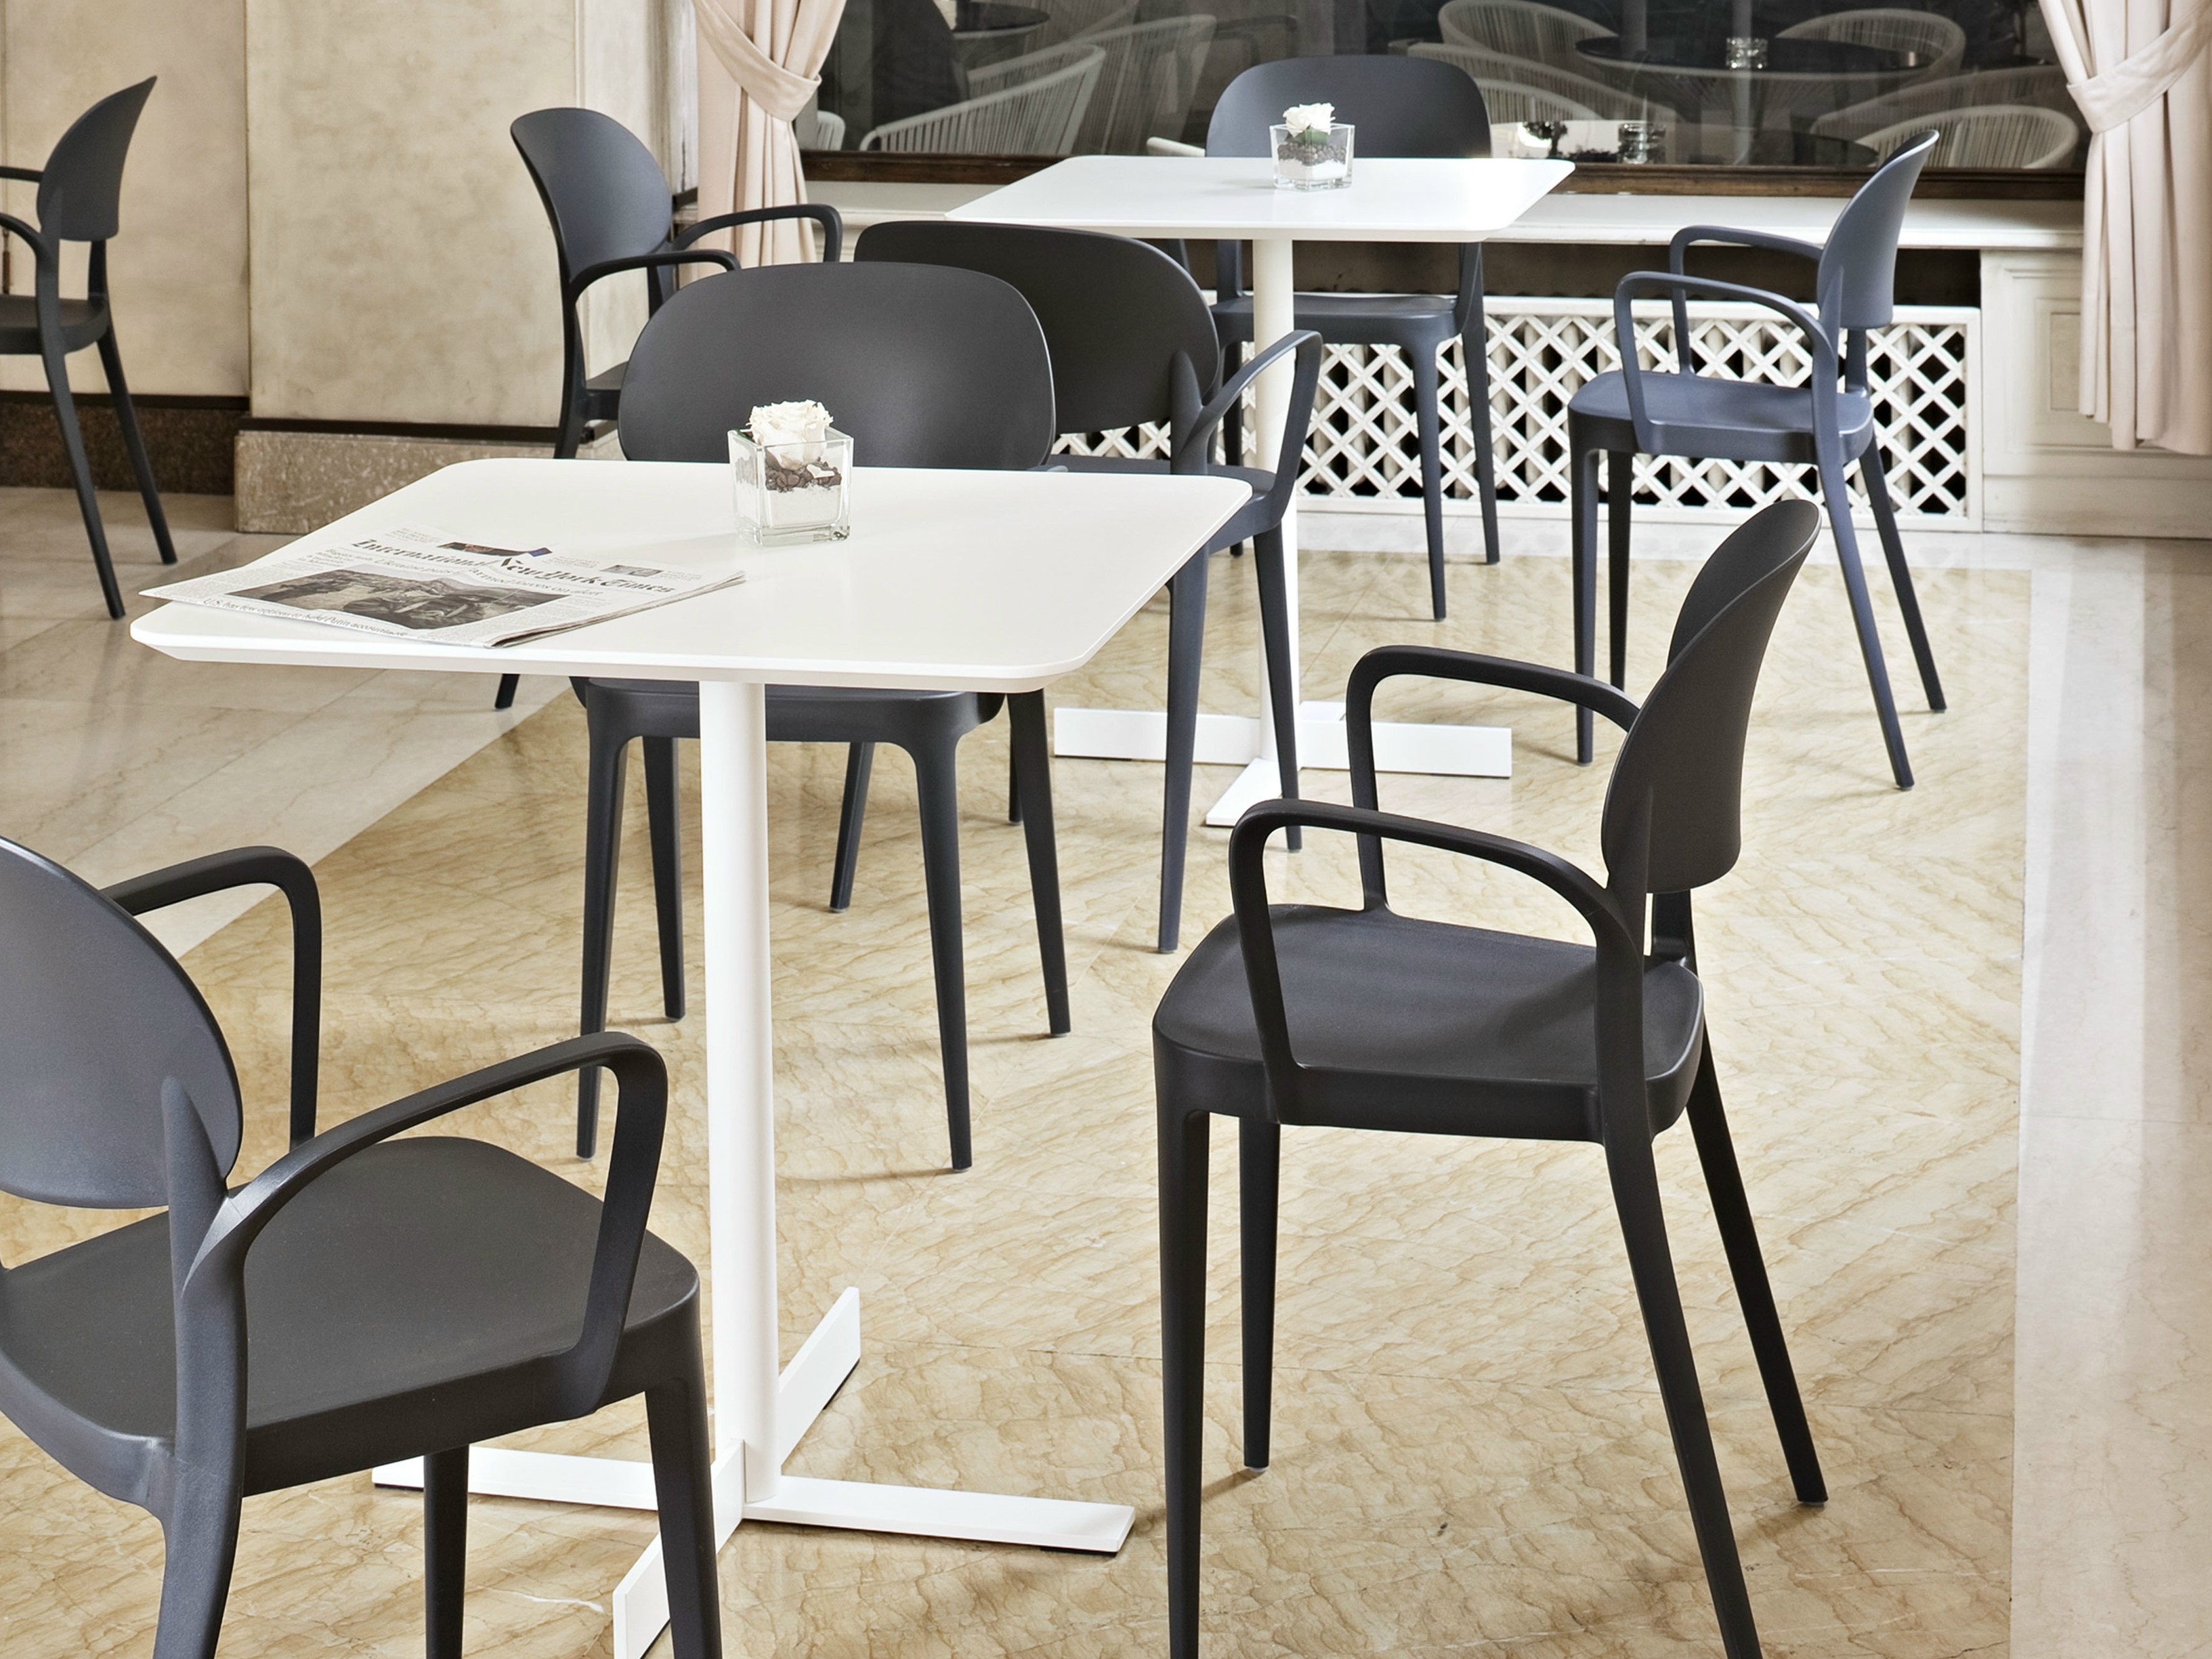 Design steel table people square table people collection - Mobilier de terrasse design ...